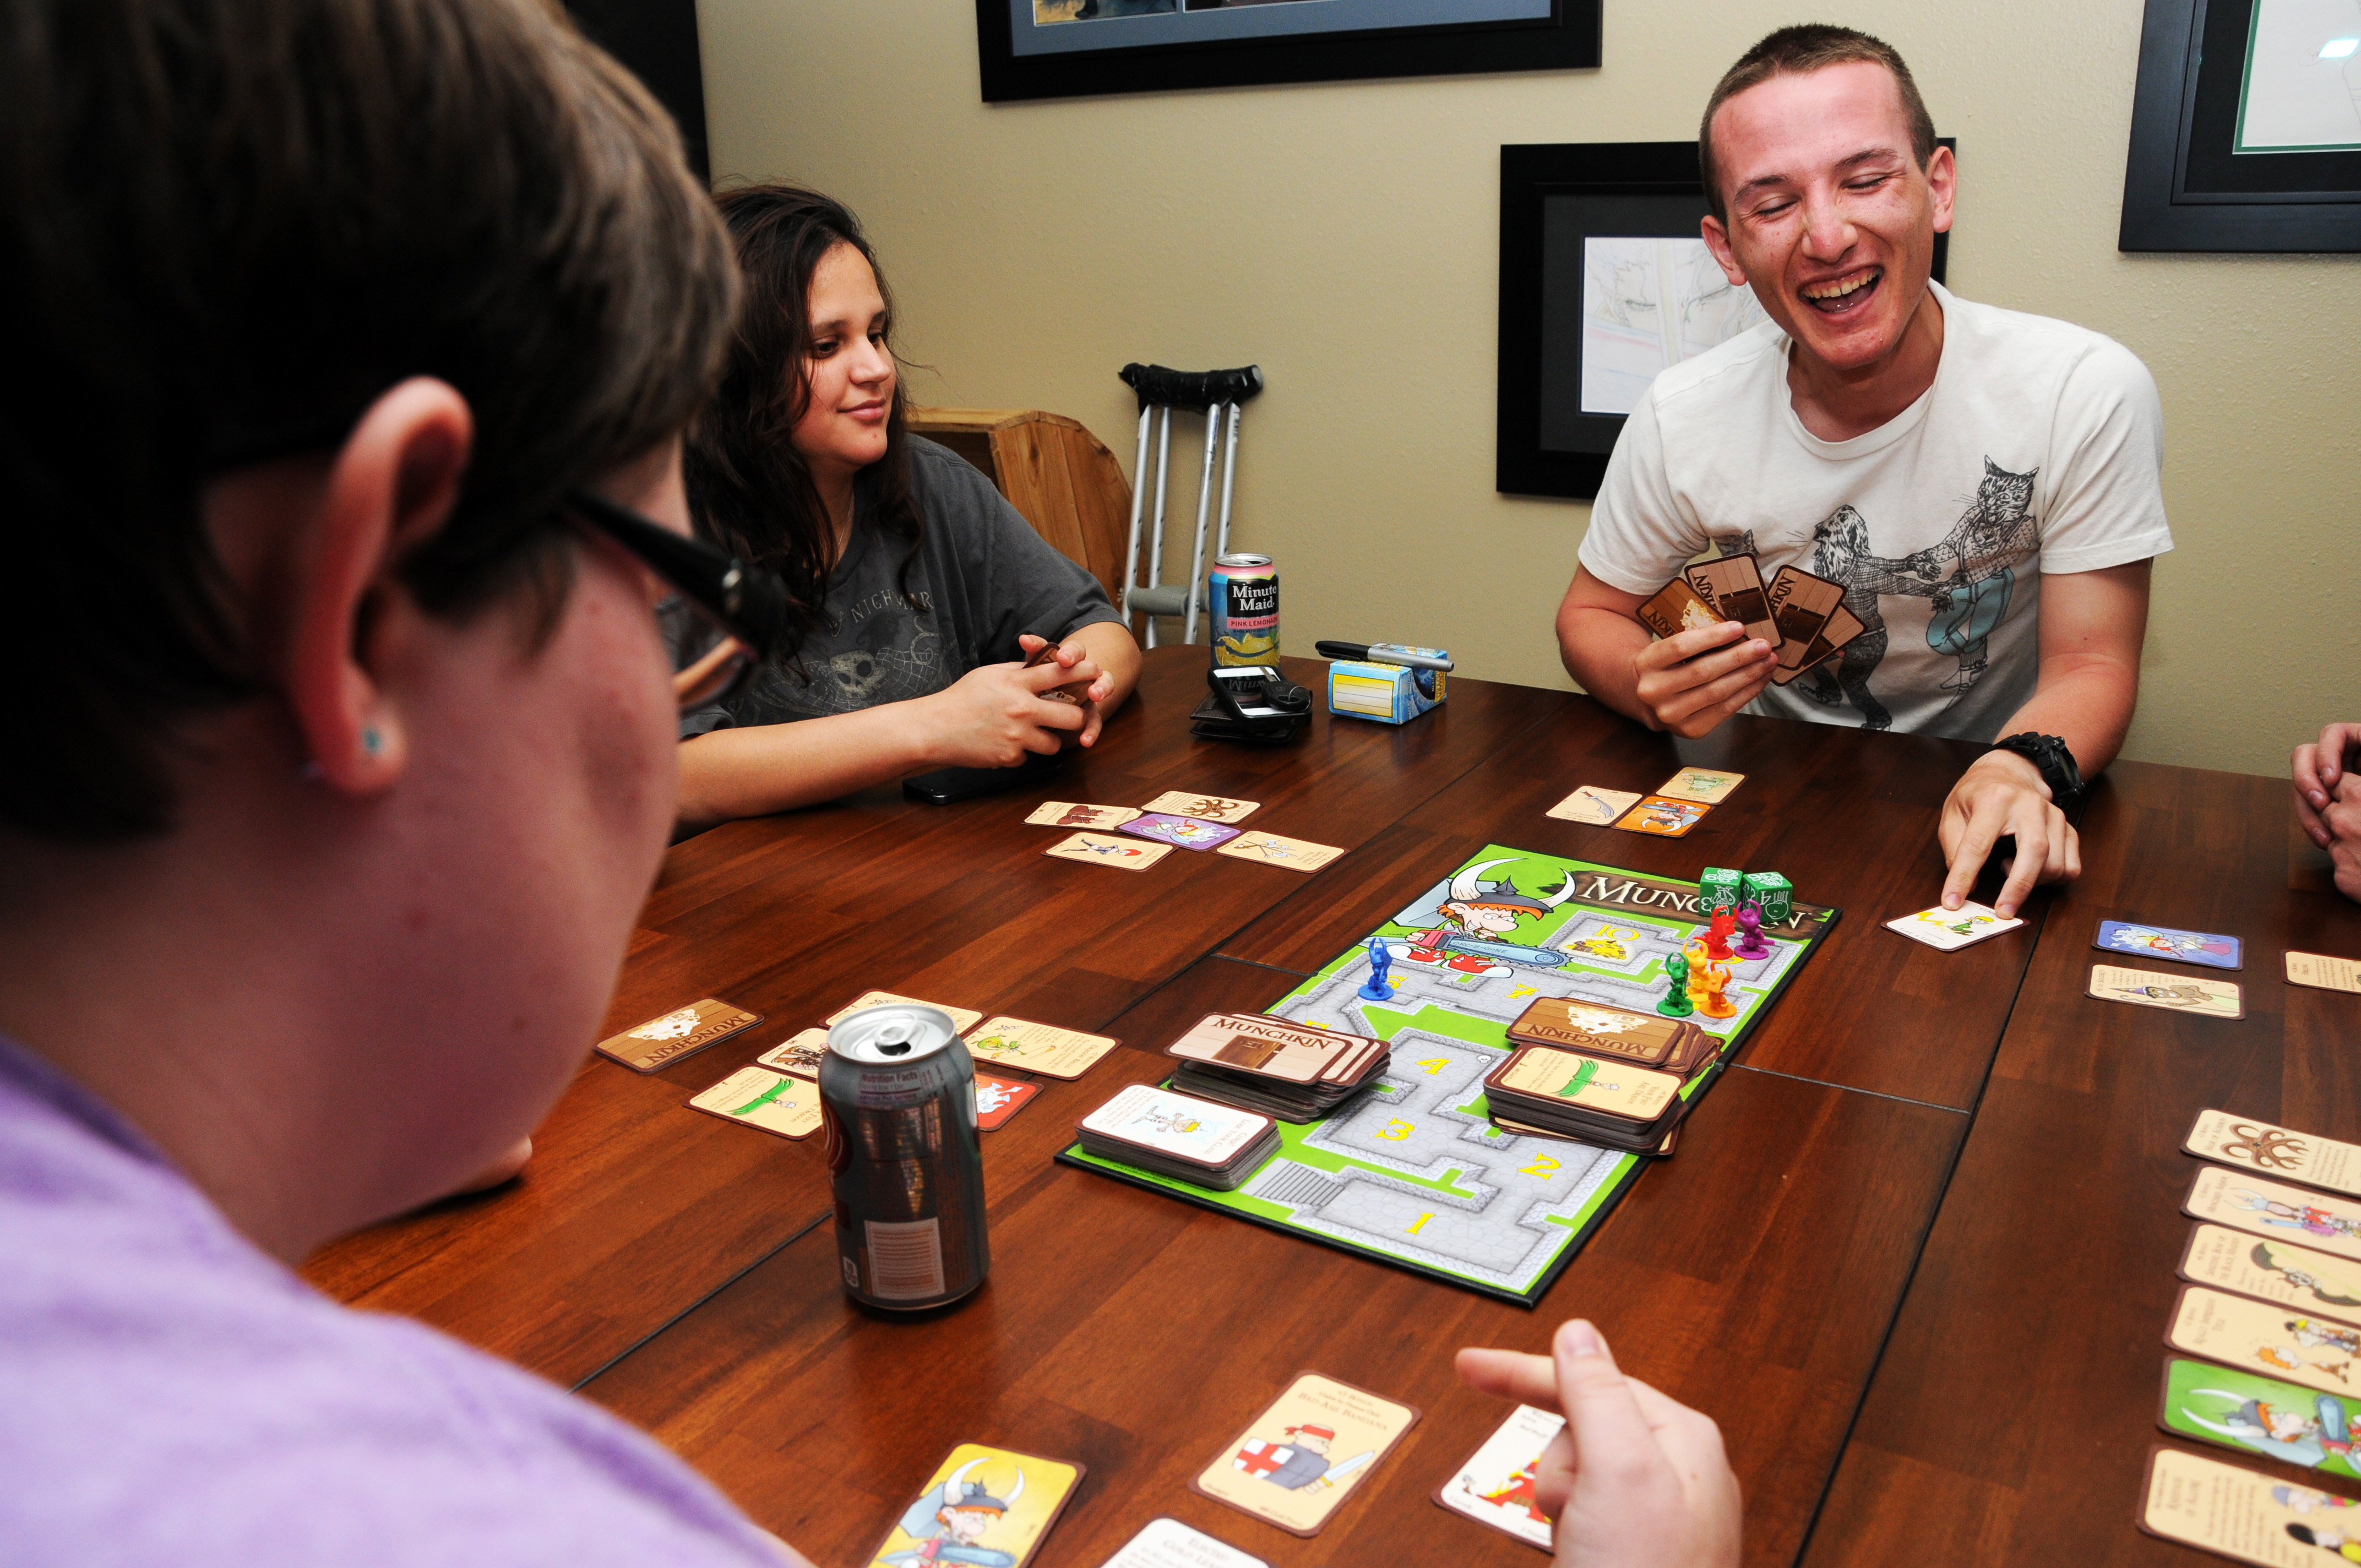 Playing tabletop games - Give Board Games A Chance Roll The Dice